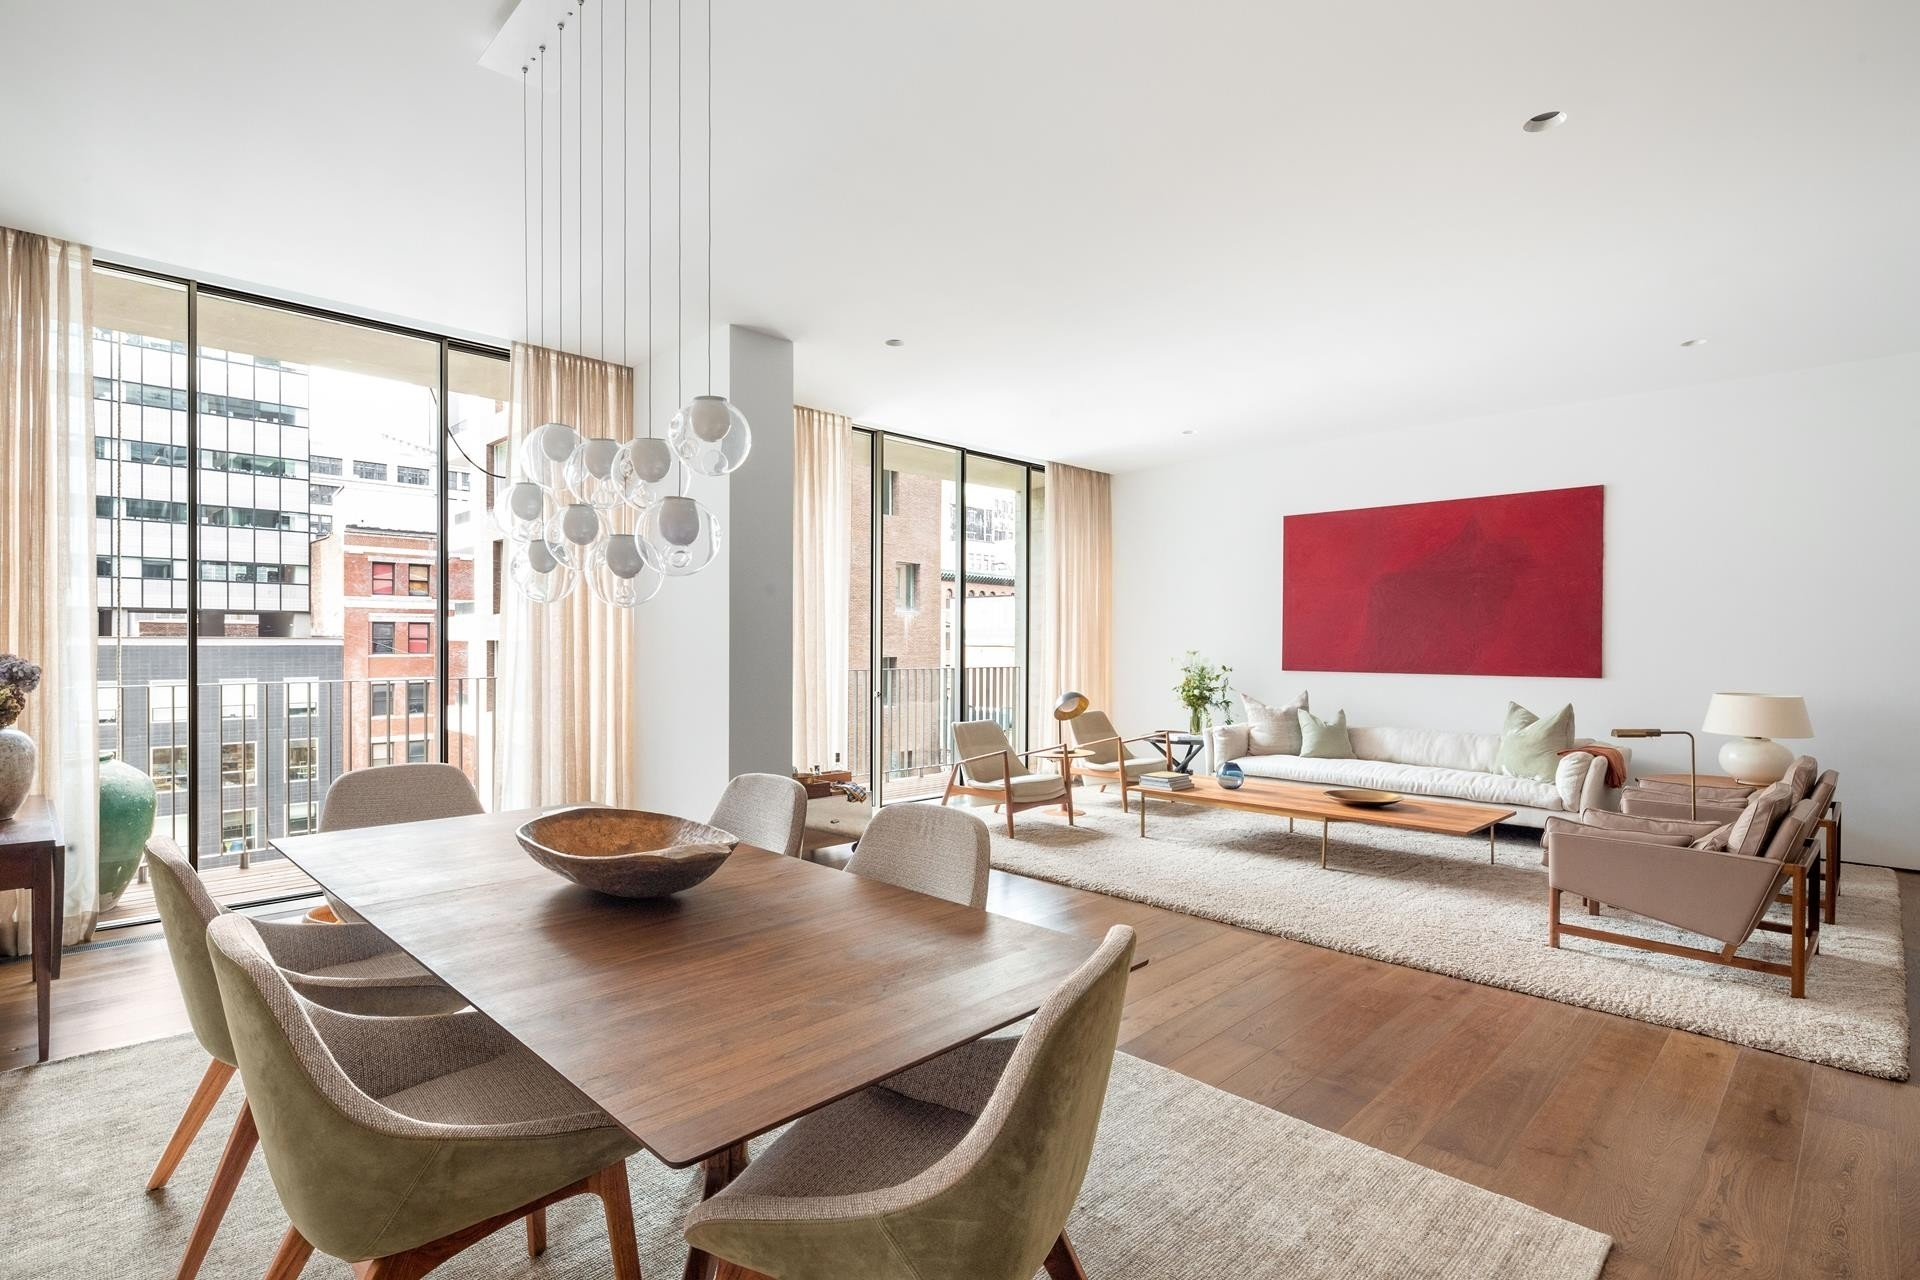 Condominium for Sale at Jardim, 527 West 27th St, 10B Chelsea, New York, NY 10001